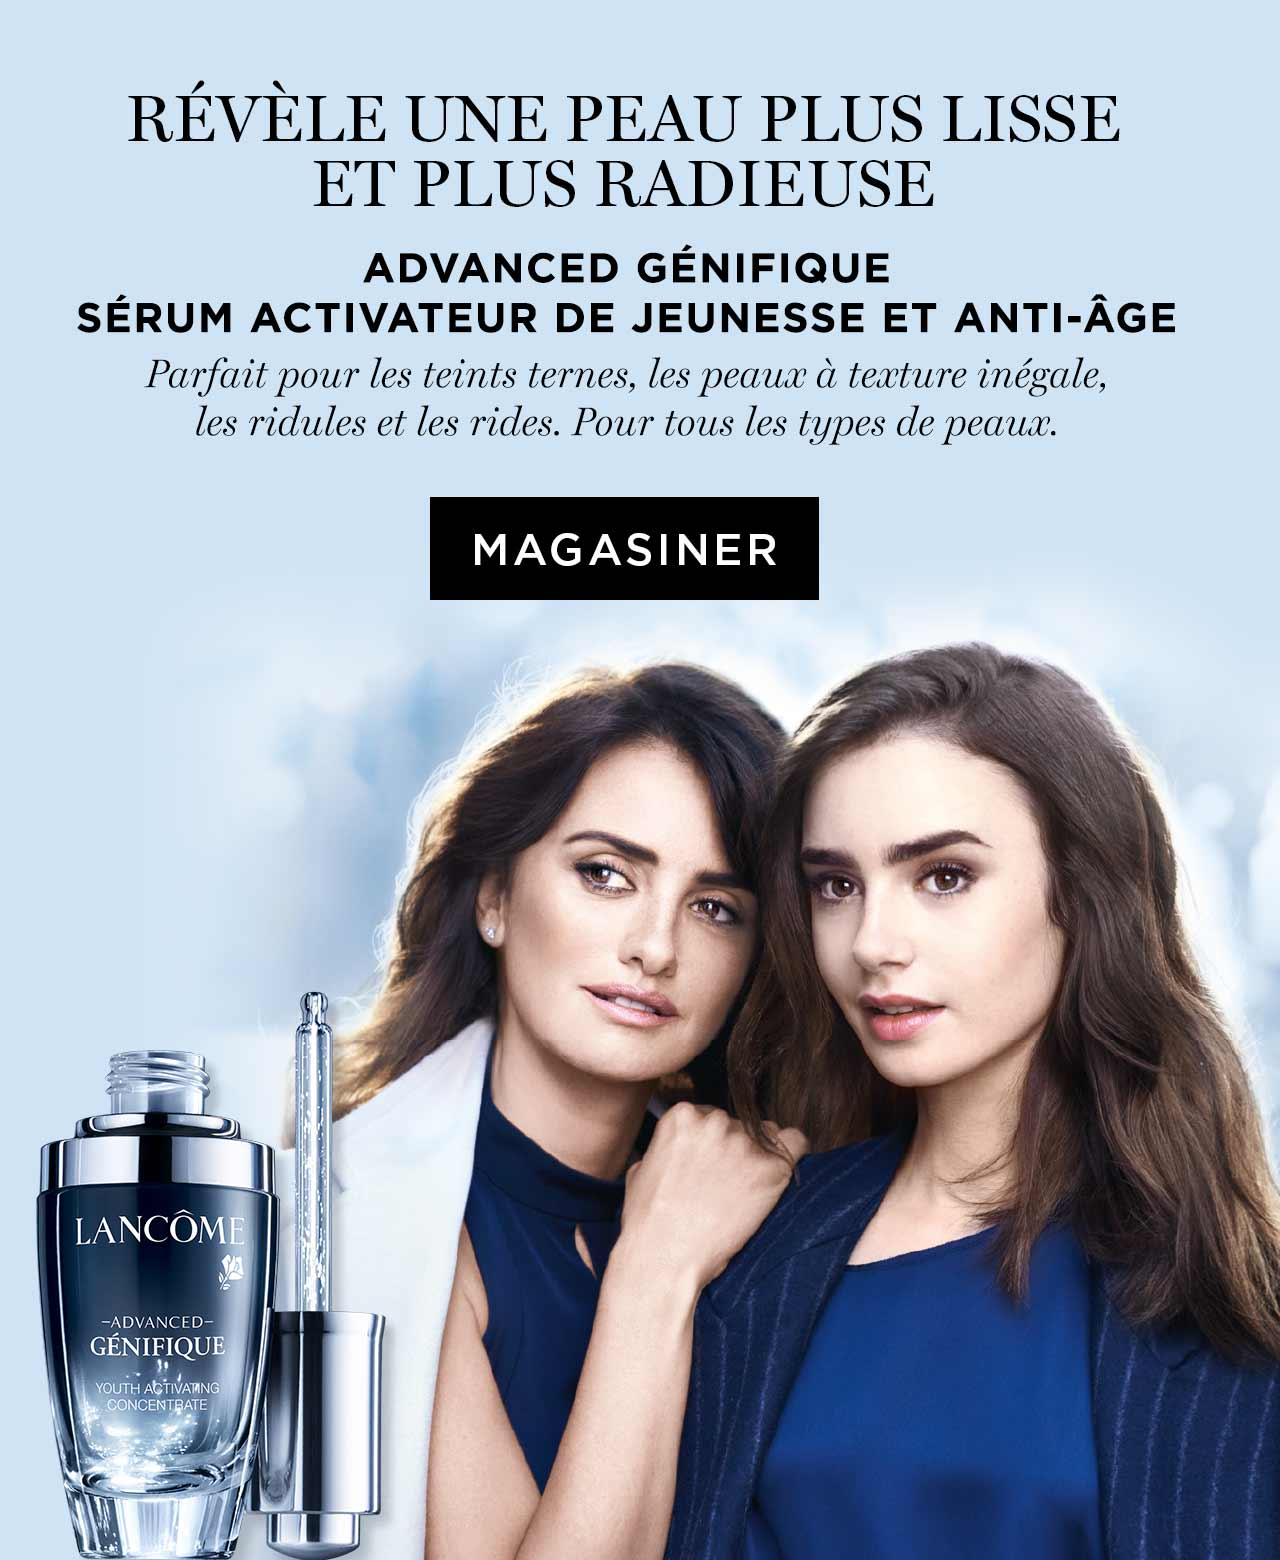 Advanced Génifique sérum activateur de jeunesse et anti-àge. Magasiner